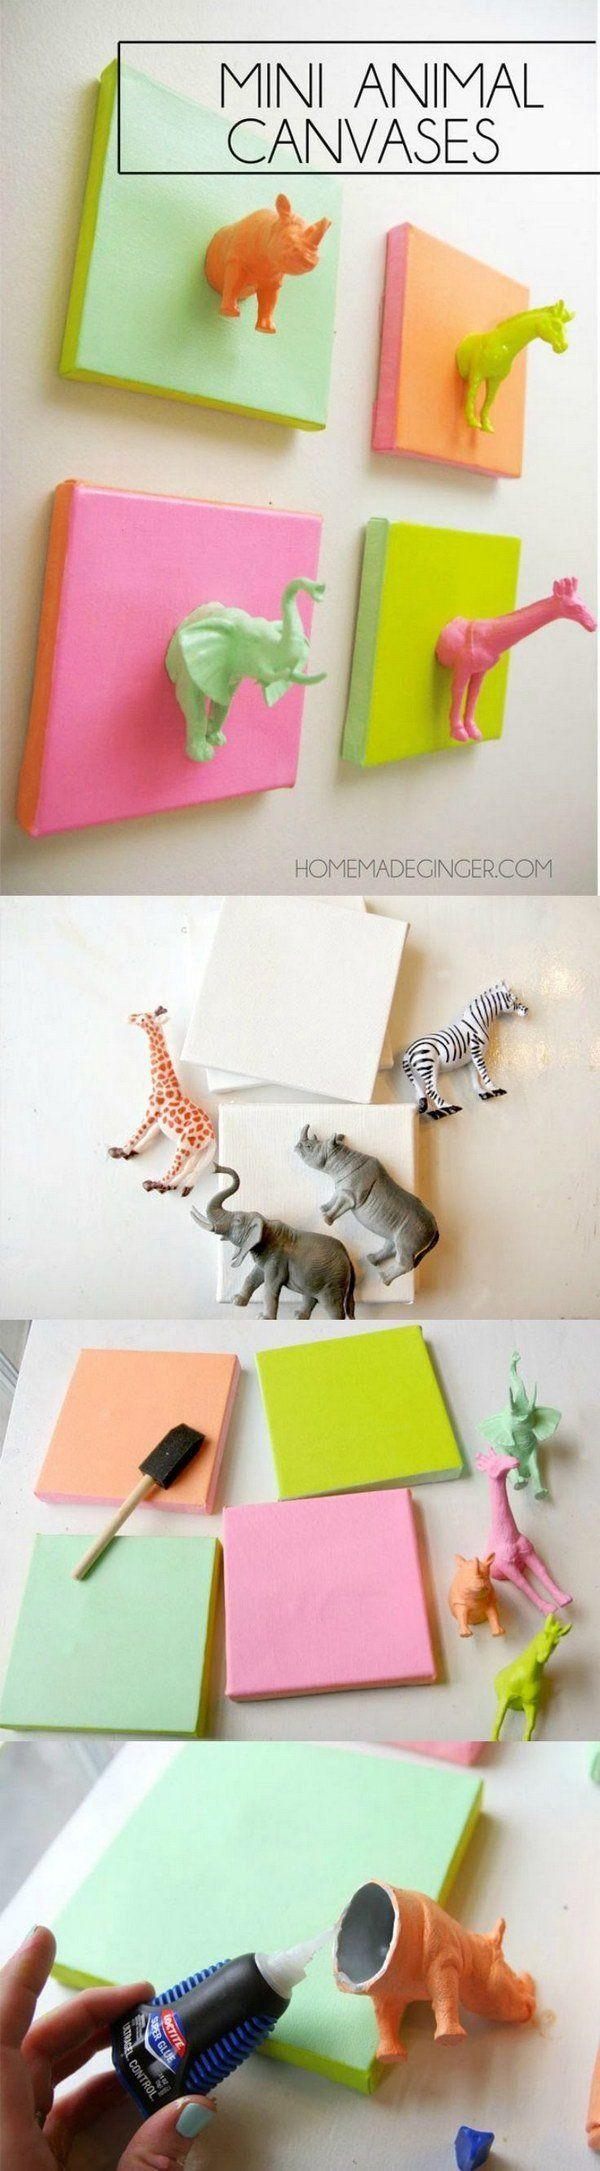 25+ Best Colorful Wall Art Ideas On Pinterest | Animal Art For For Vibrant Wall Art (Image 2 of 20)